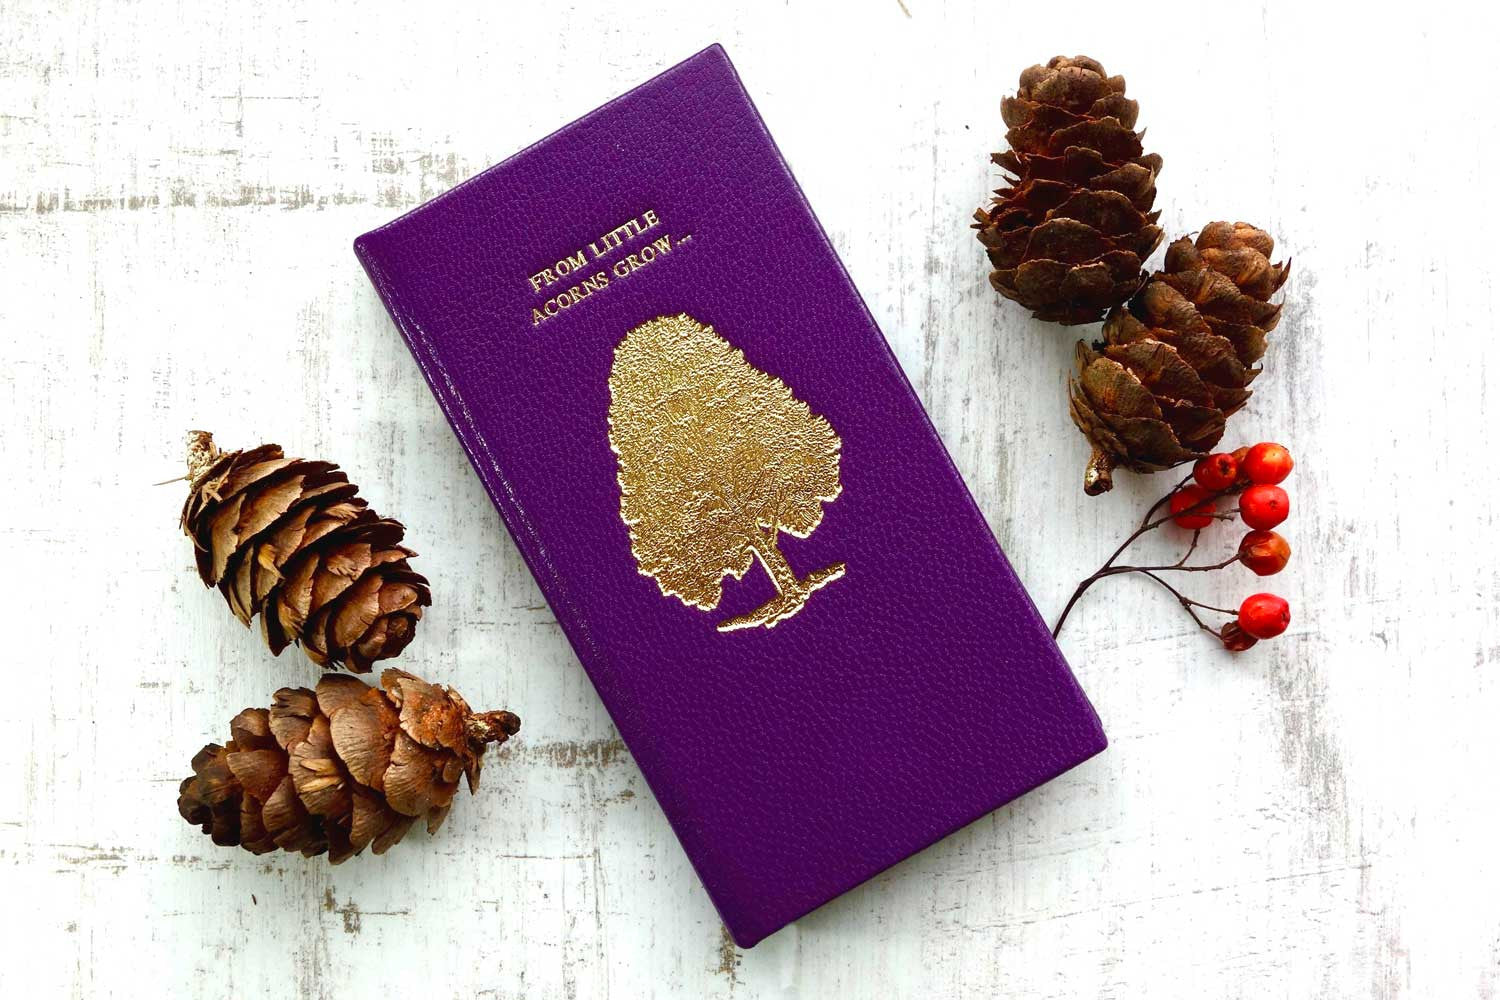 Luxury leather phone cases from Bookshell Bindery hand bound in purple leather with a tree on the cover